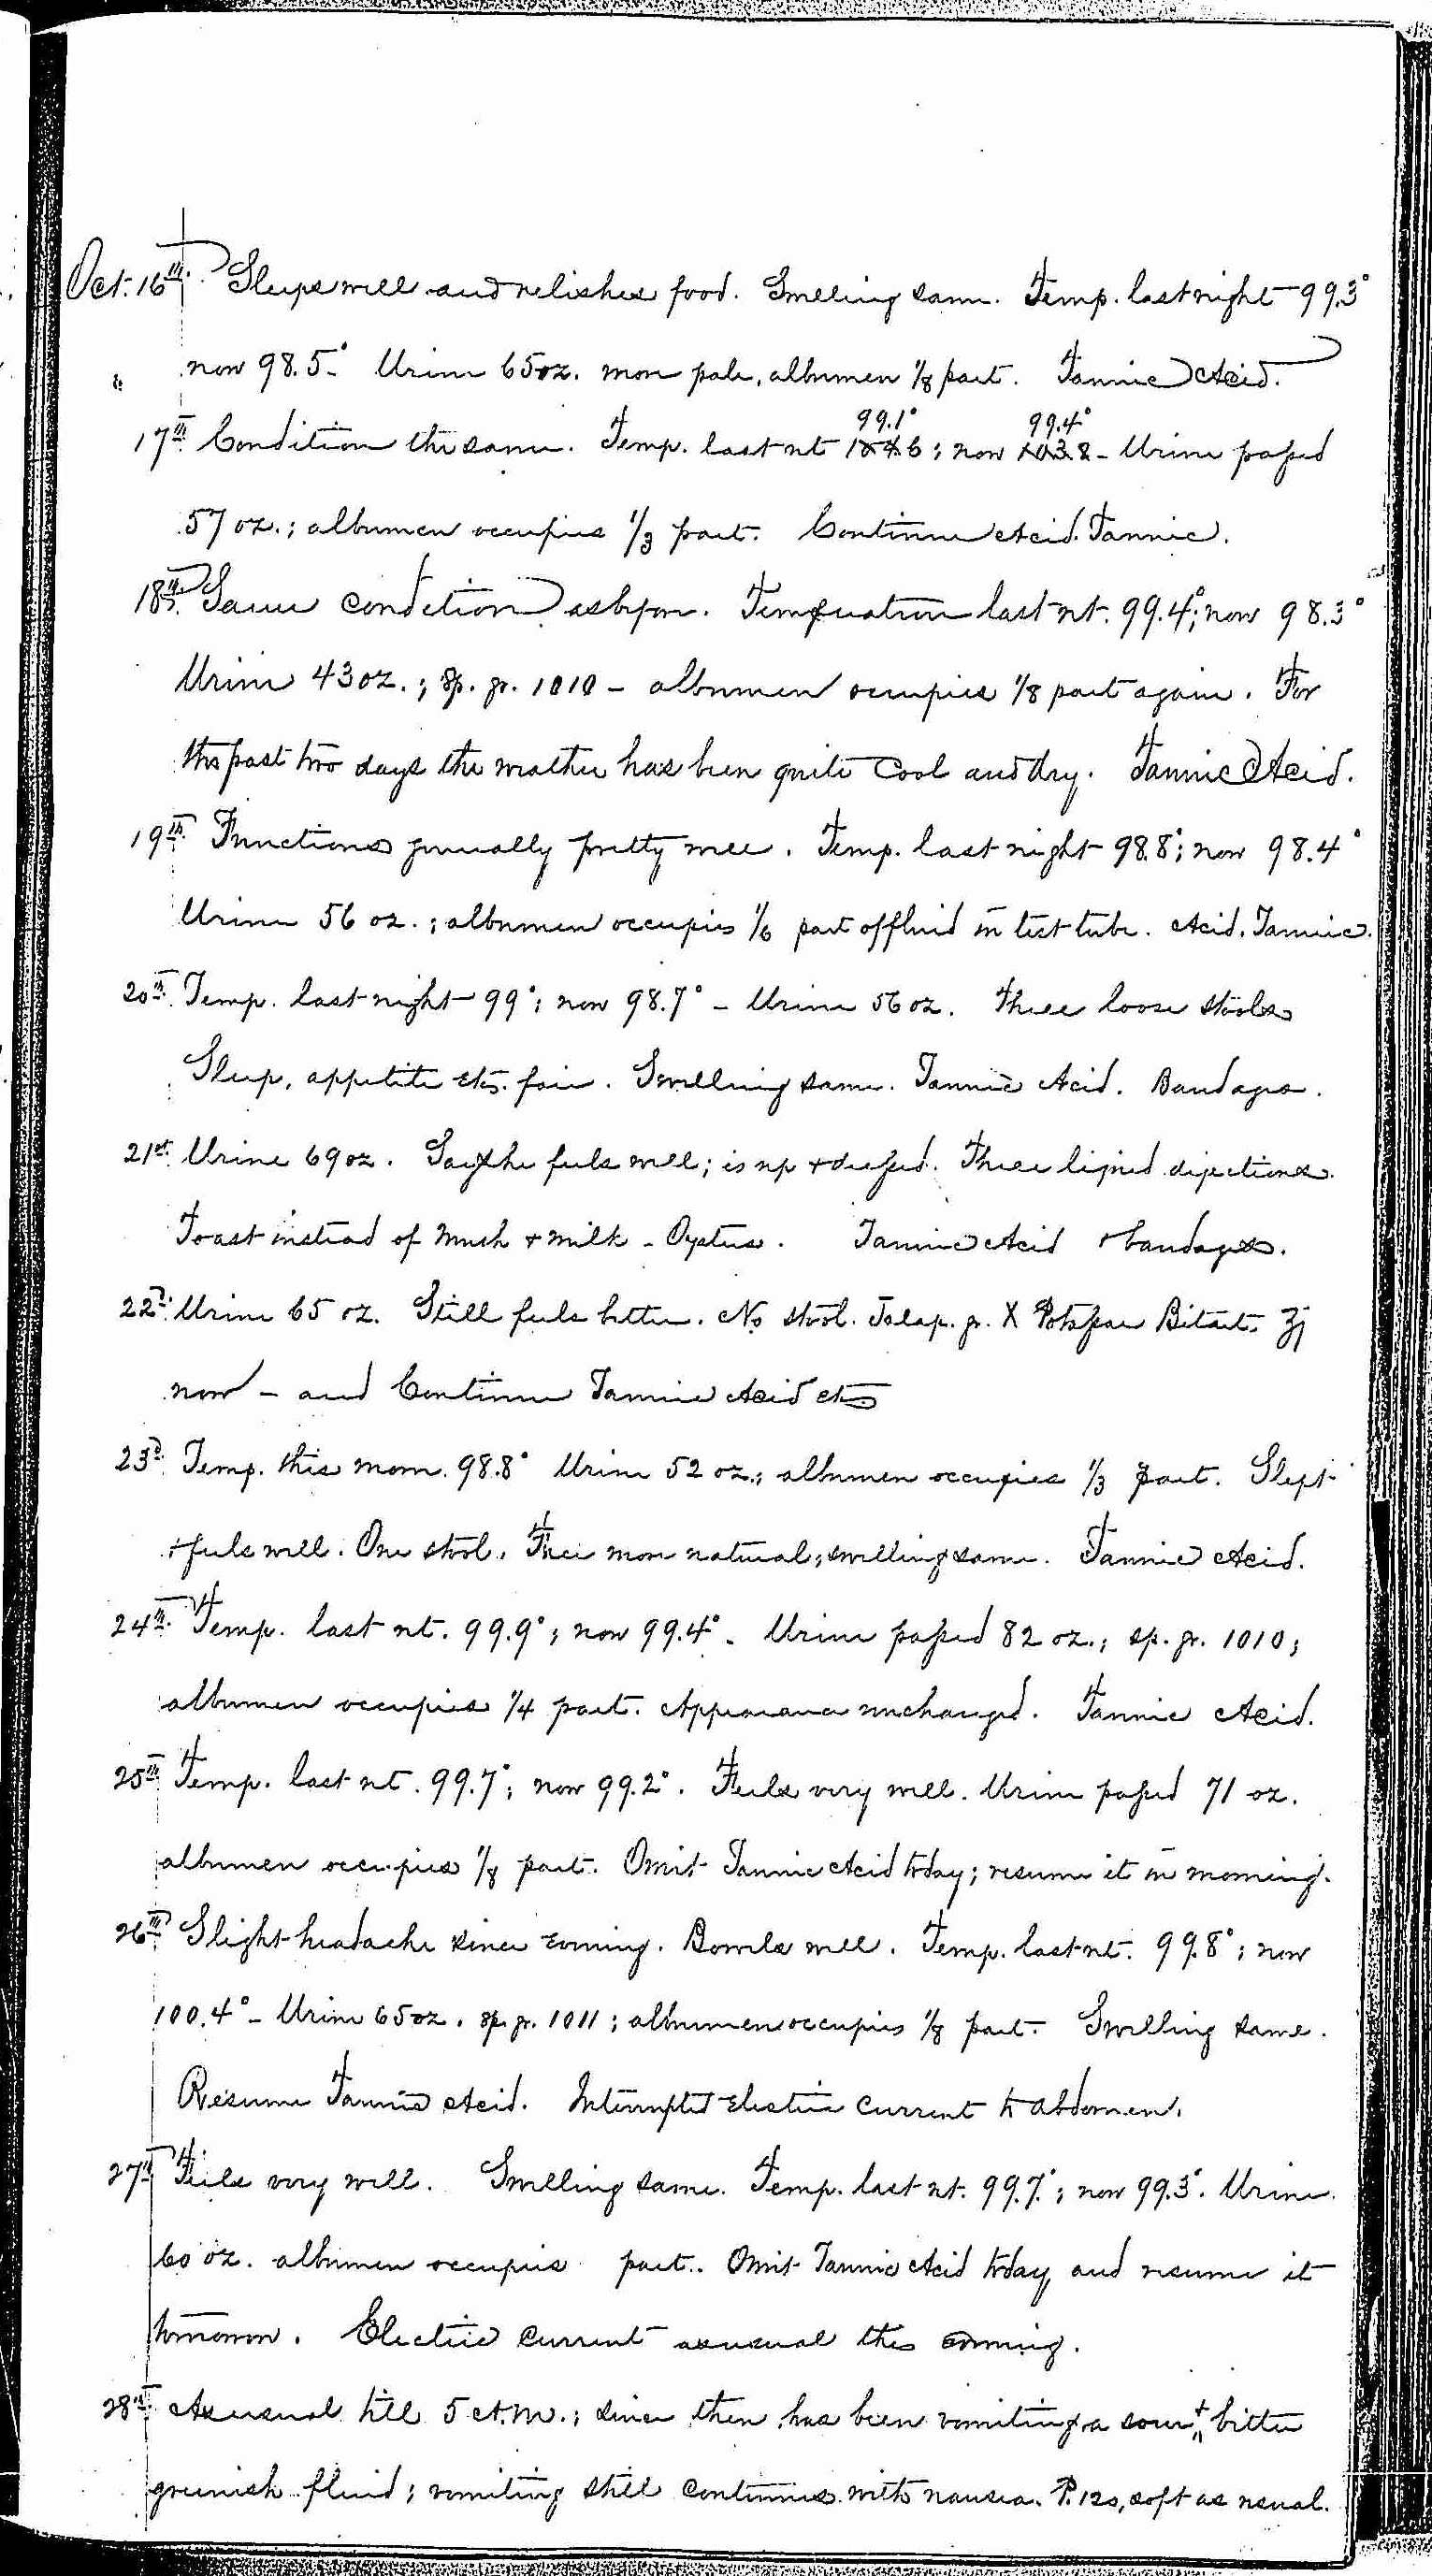 Entry for Bernard Coyne (page 7 of 13) in the log Hospital Tickets and Case Papers - Naval Hospital - Washington, D.C. - 1868-69